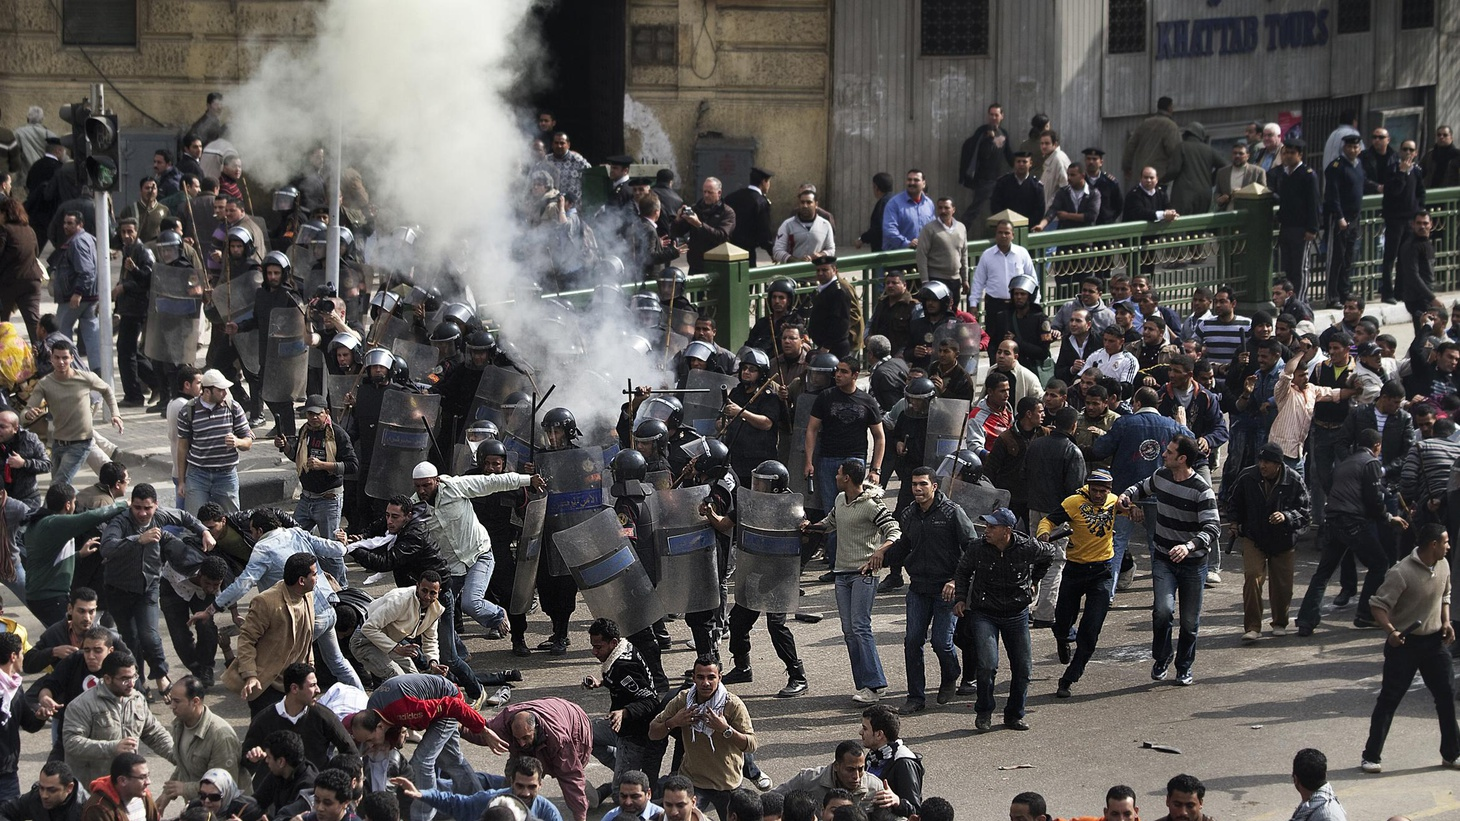 As tens of thousands of anti-government protestors take to the streets in Egypt, how will reaction from the US affect the way Egyptian authorities react to the crisis? Also, the Congressional Budget Office is projecting a record deficit of $1.5 trillion, nearly half a billion dollars higher than its previous estimate. Whose negligence and recklessness led to the 2008 financial meltdown? There's a new round of finger pointing in Thursday's 633-page report on the crisis.  Finally, the take-away from Tuesday's State of the Union address. (Guest moderator Sara Terry sits in for Matt Miller, and Ed Kilgore sits in for Arianna Huffington.)